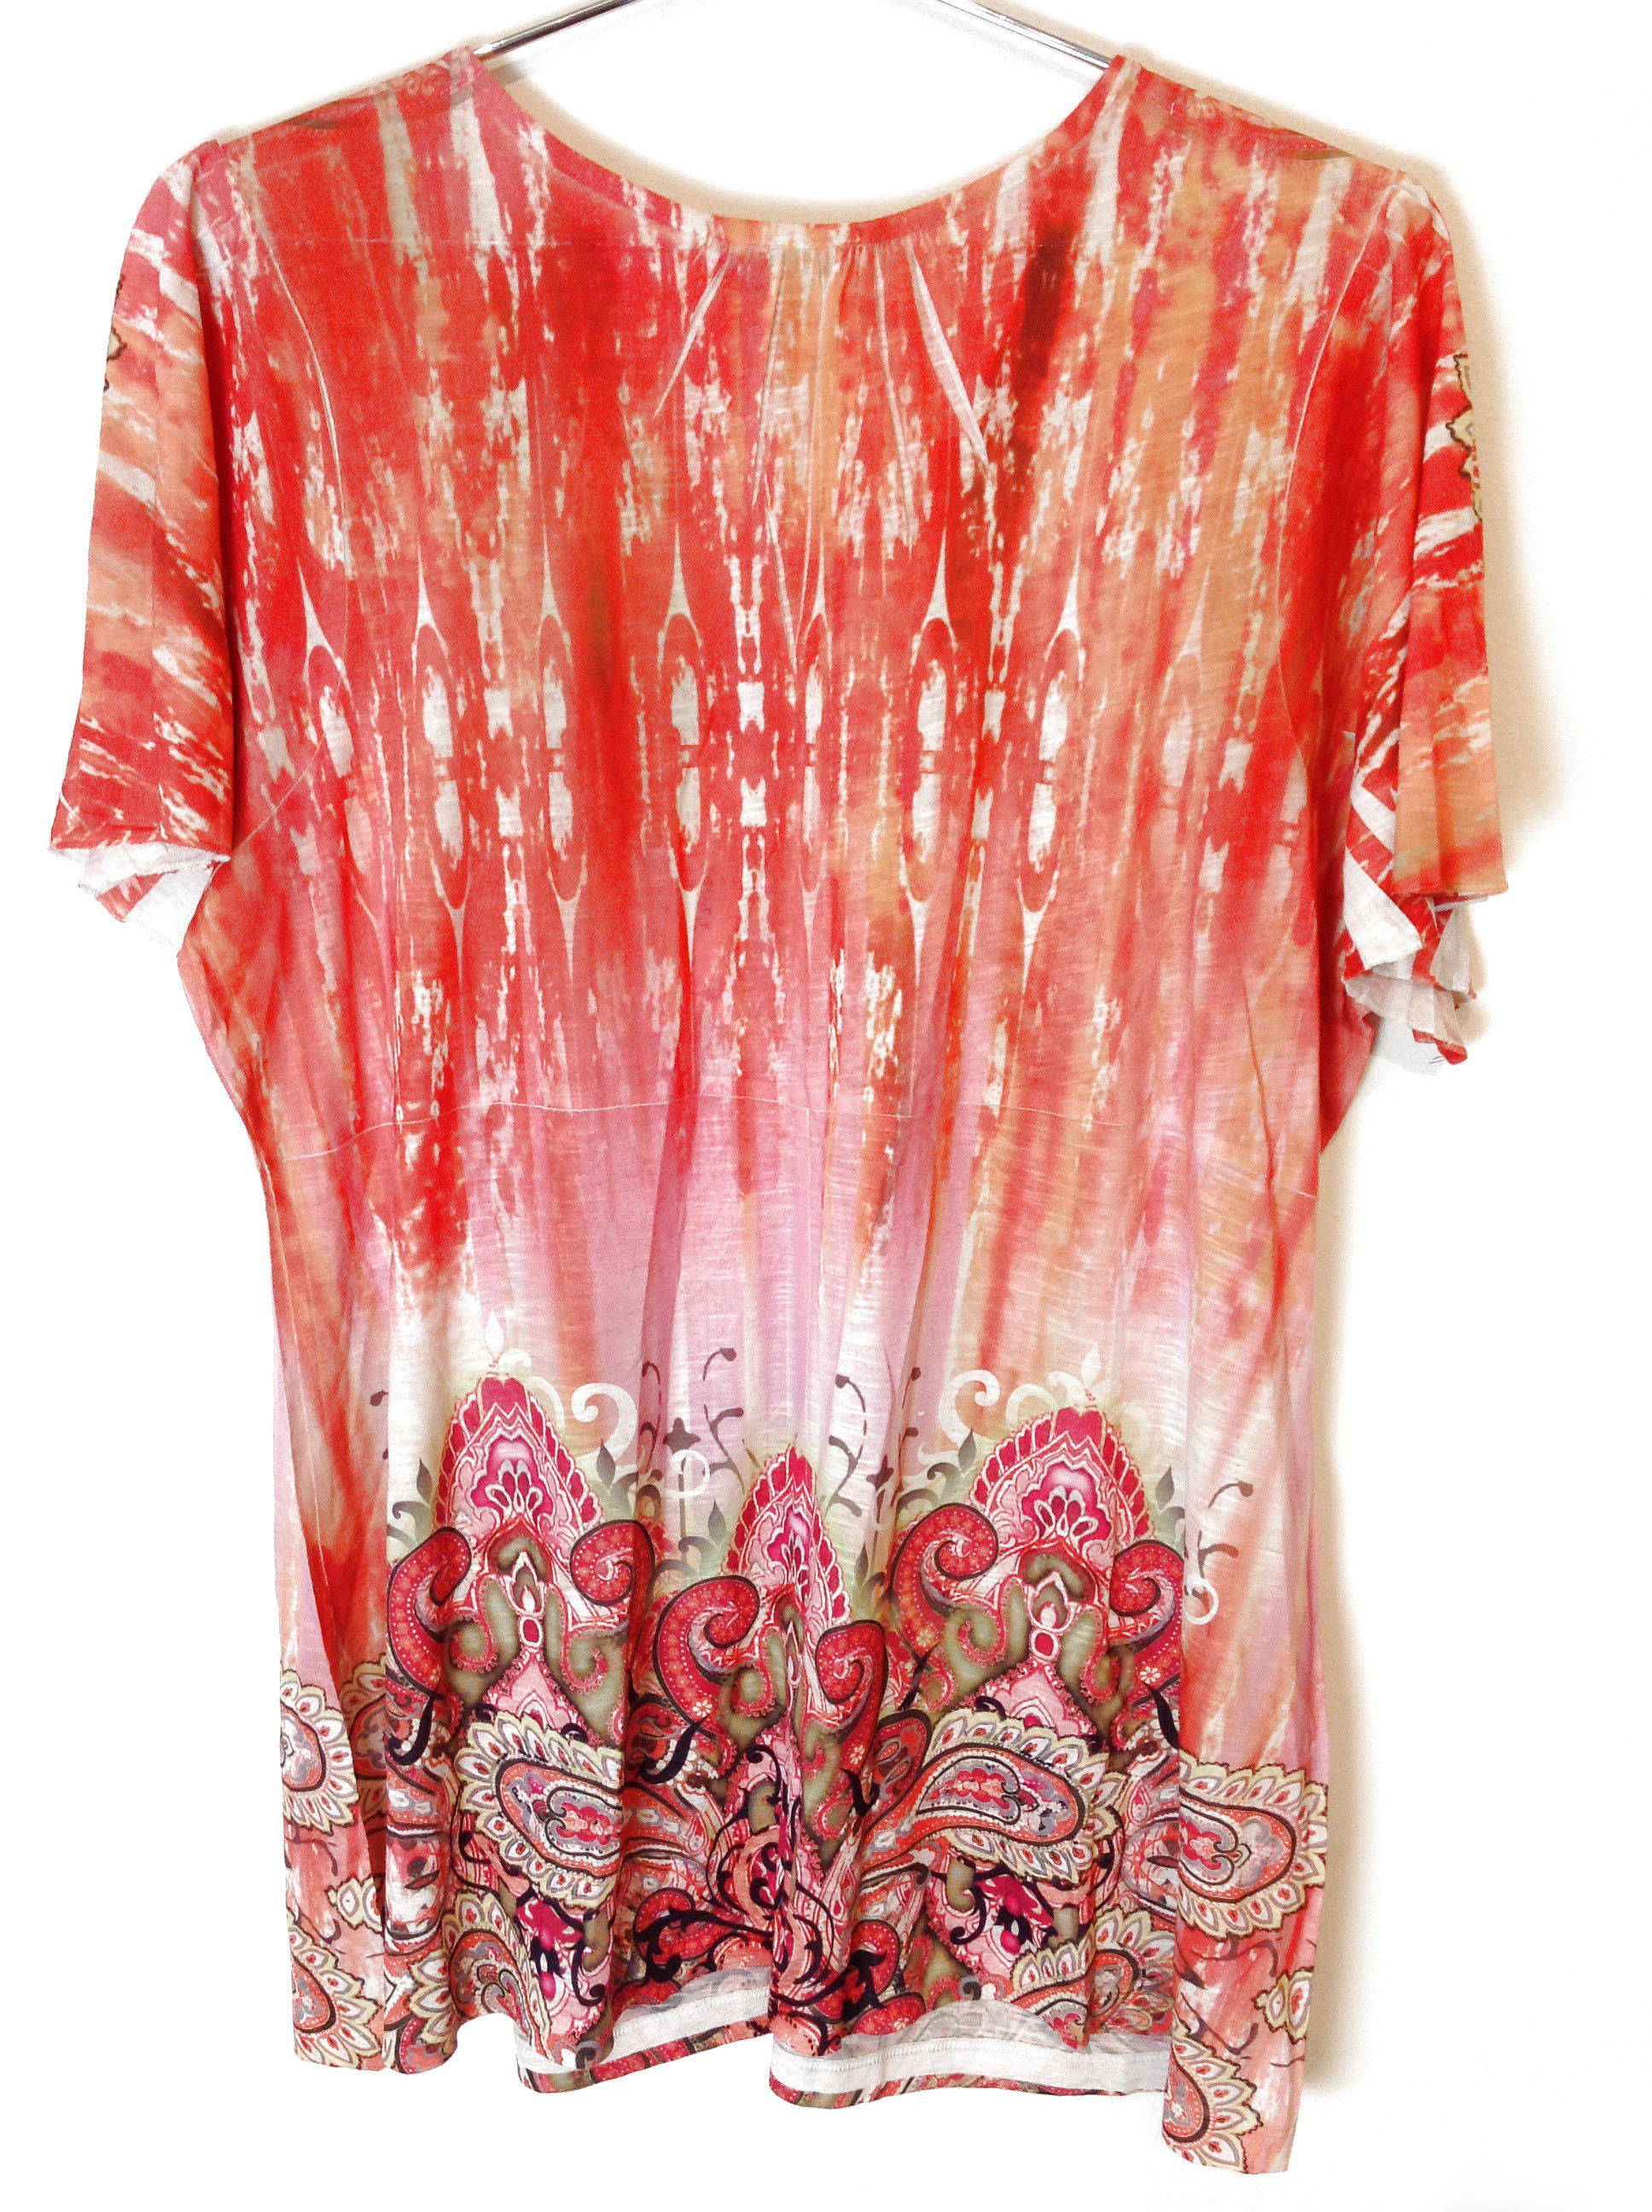 New-One-World-Womens-Plus-Size-Printed-Blouse-Flutter-Sleeve-Embellished-Top-44 thumbnail 3